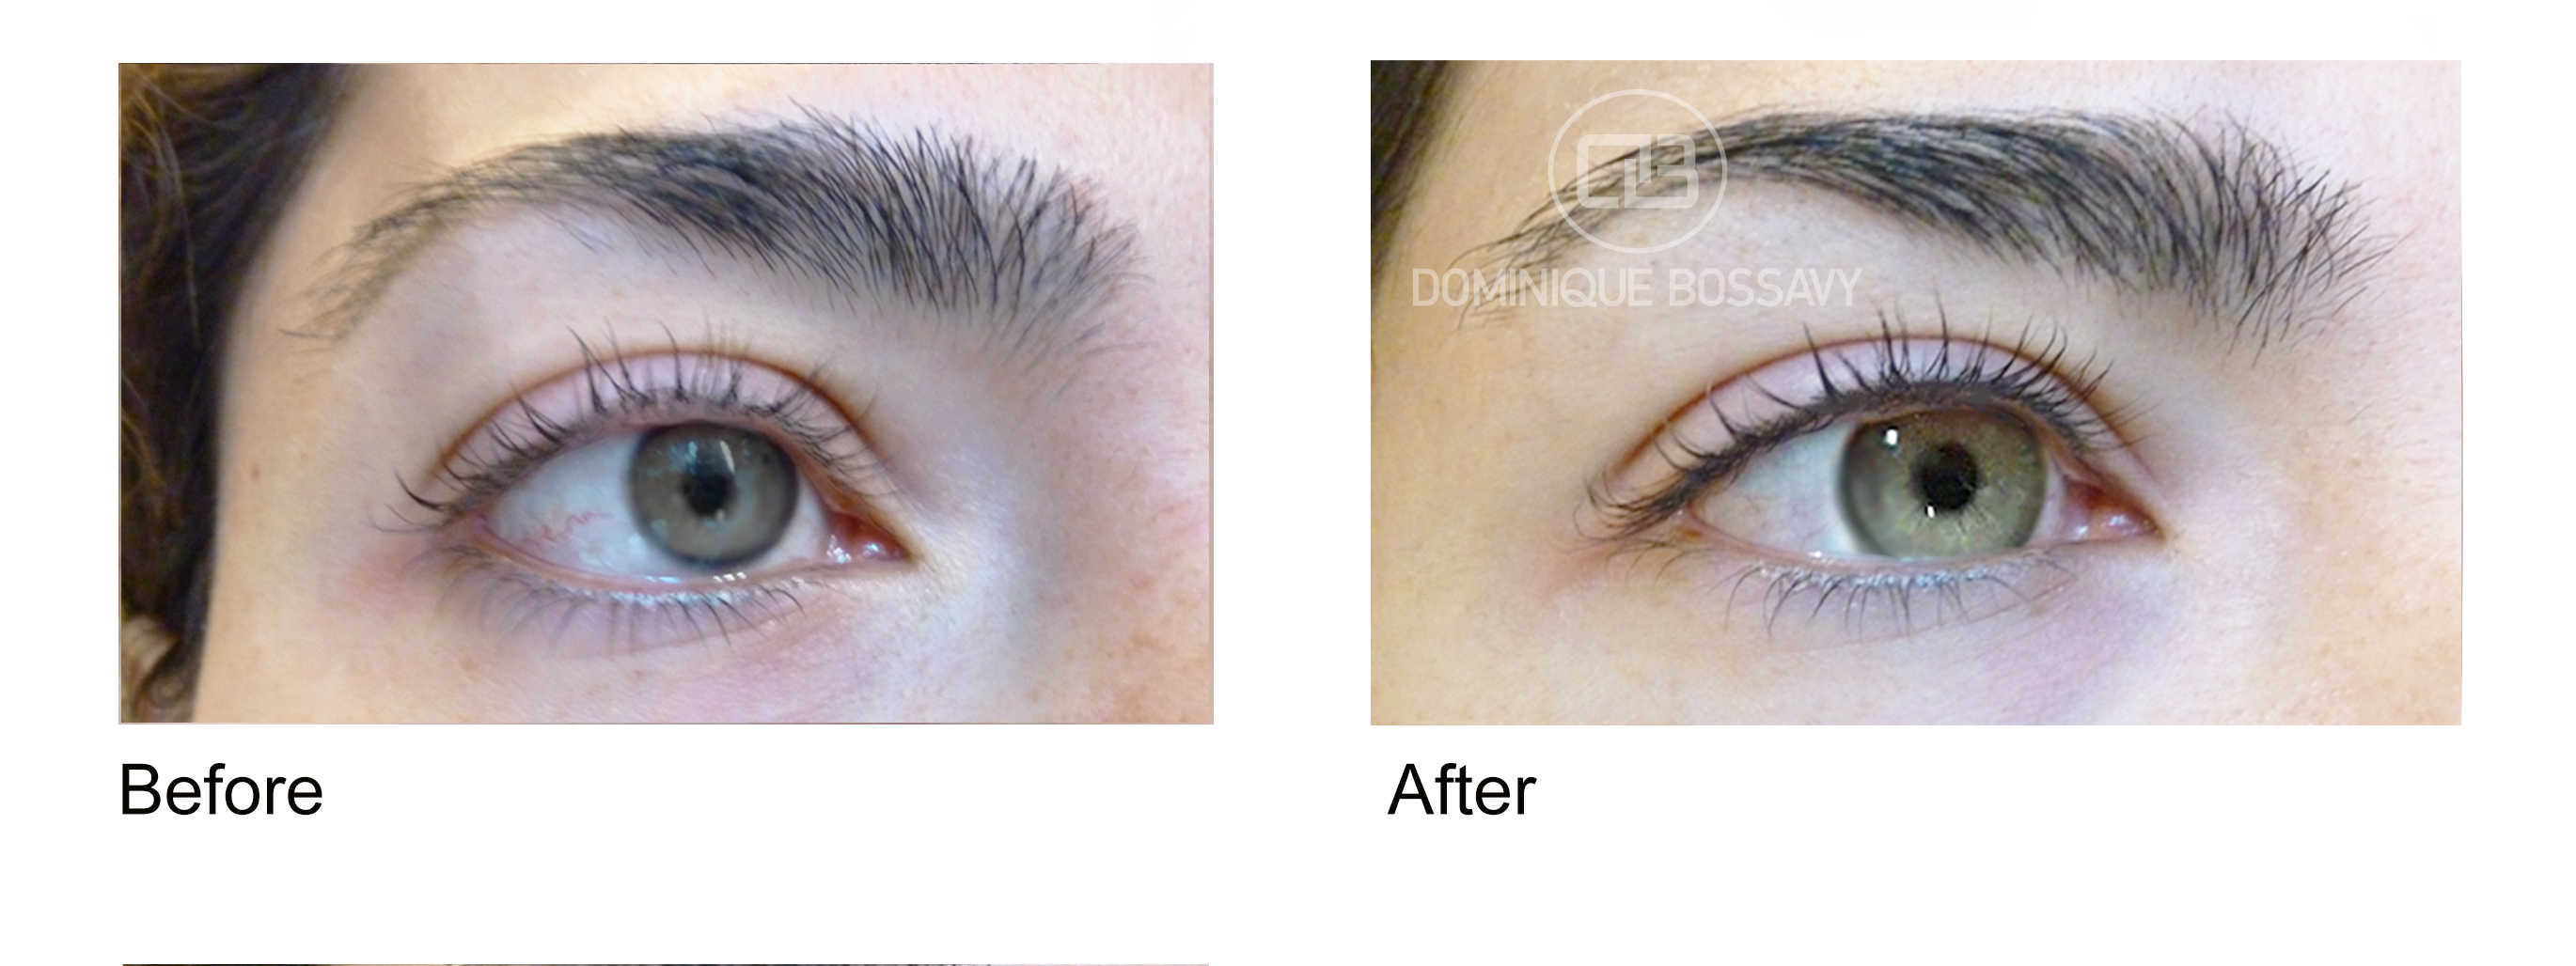 Before And After Eyeliner By Dominique Bossavy Permanent Makeup